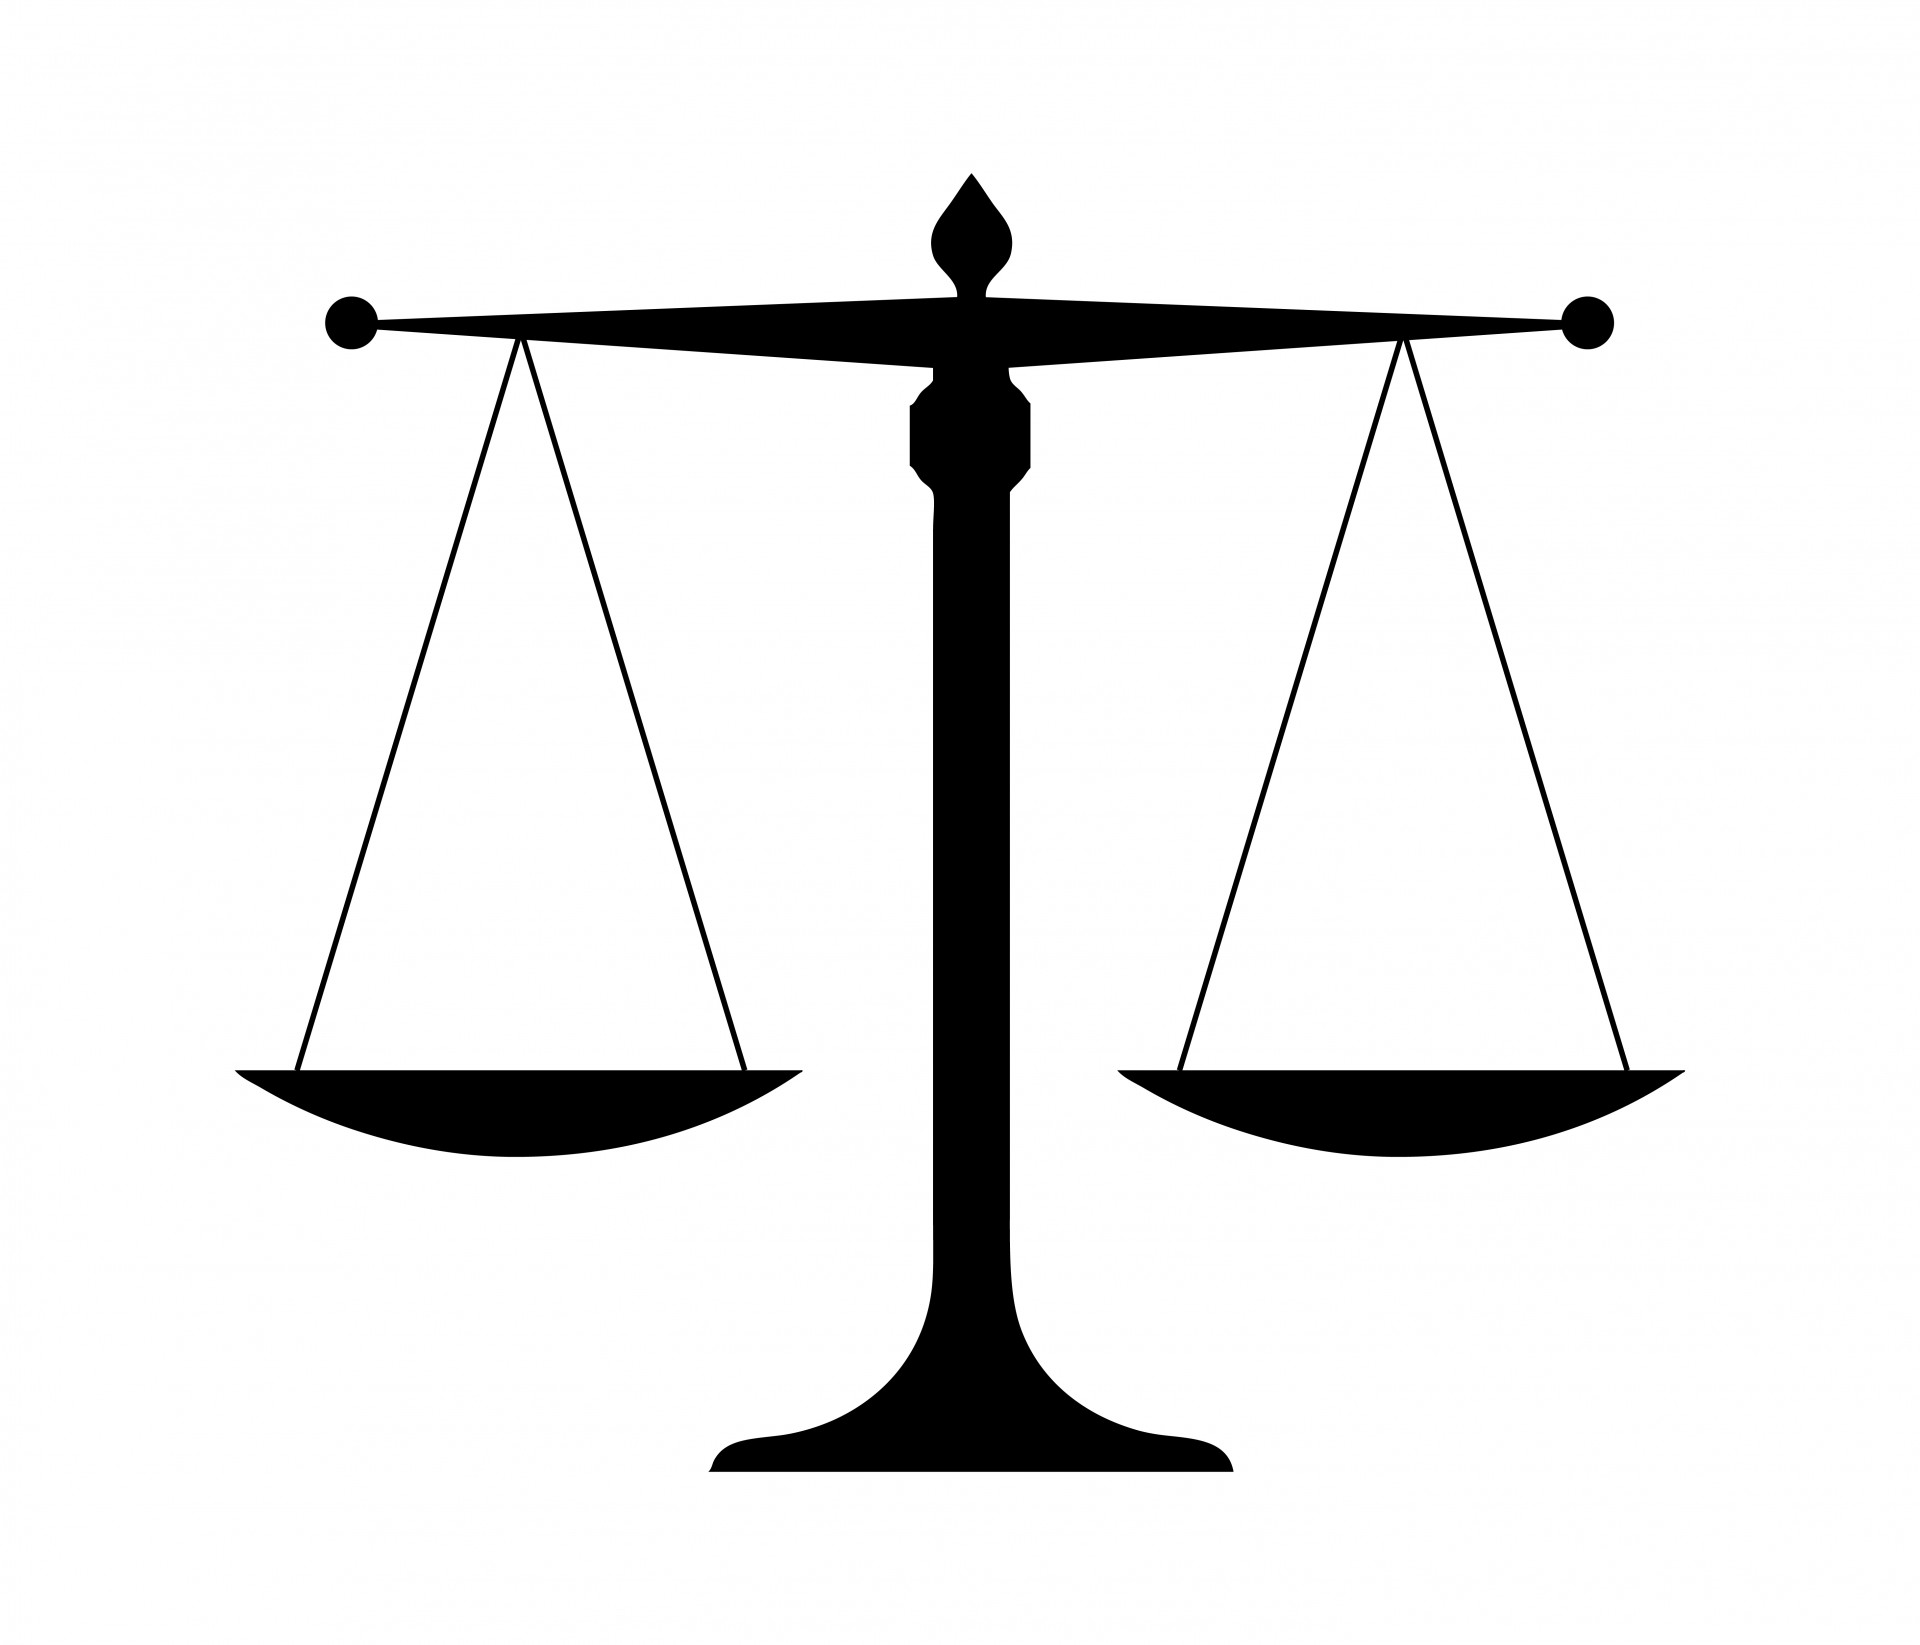 Justice clipart scales justice. Of free stock photo